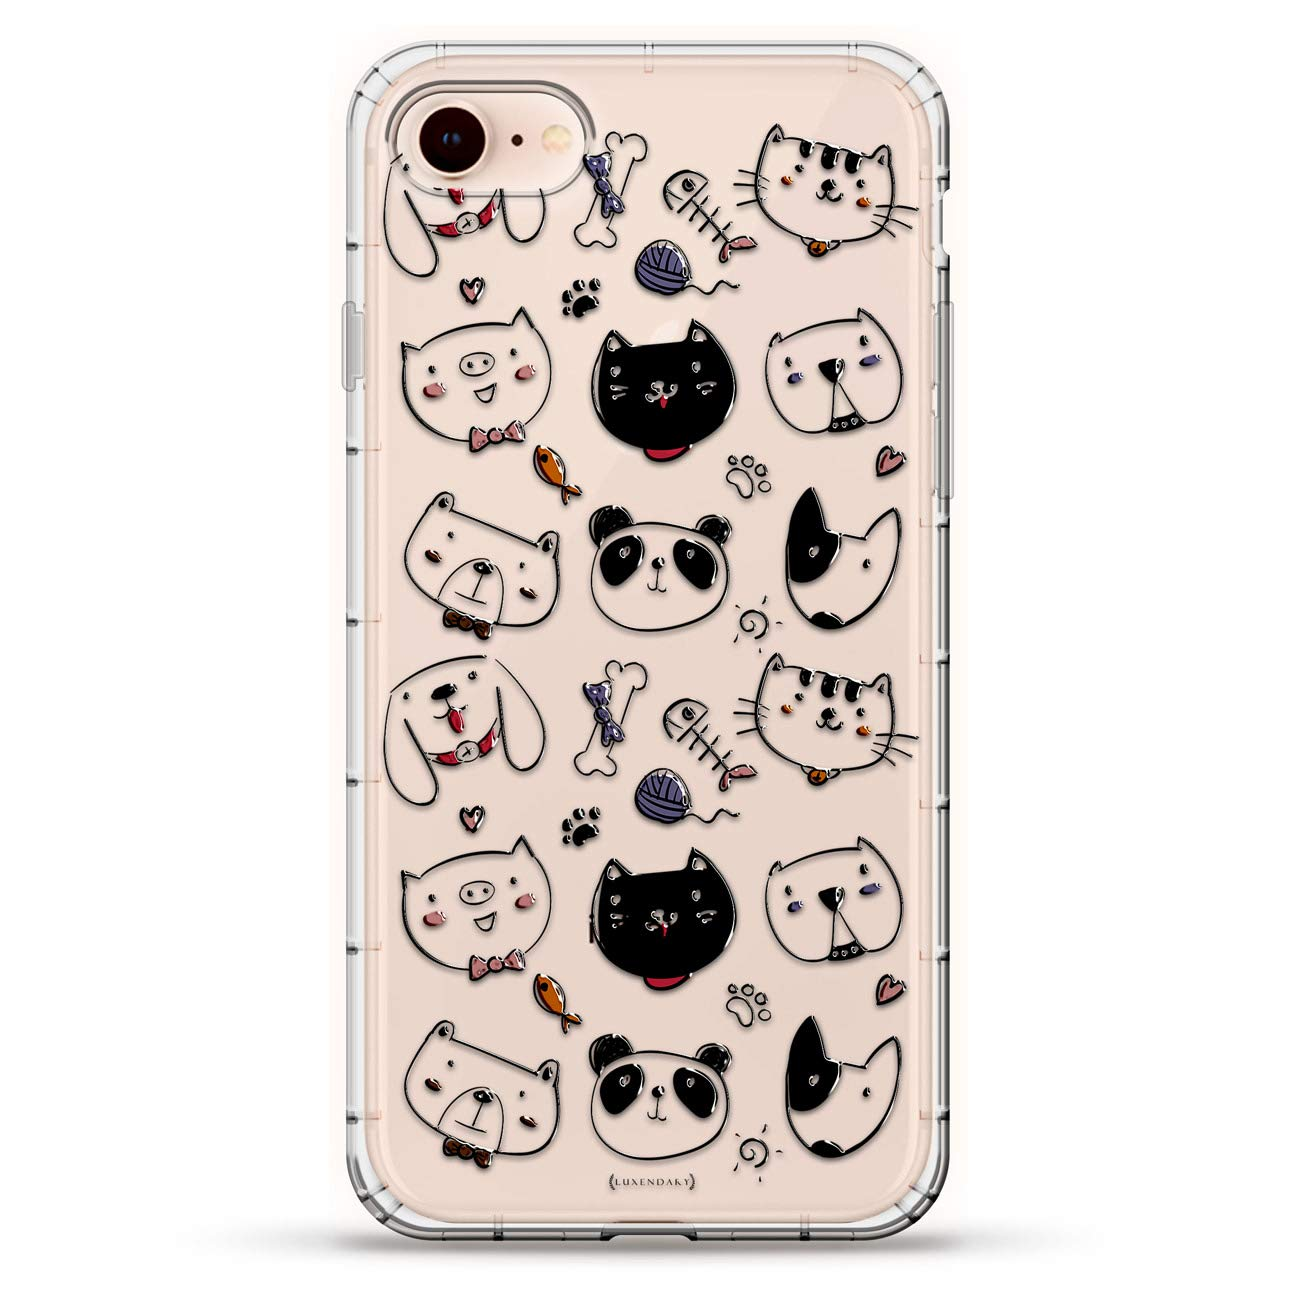 Funny: Cute Animals | Luxendary Air Series Clear Silicone Case with 3D Printed Design and Air-Pocket Cushion Bumper for iPhone 8/7